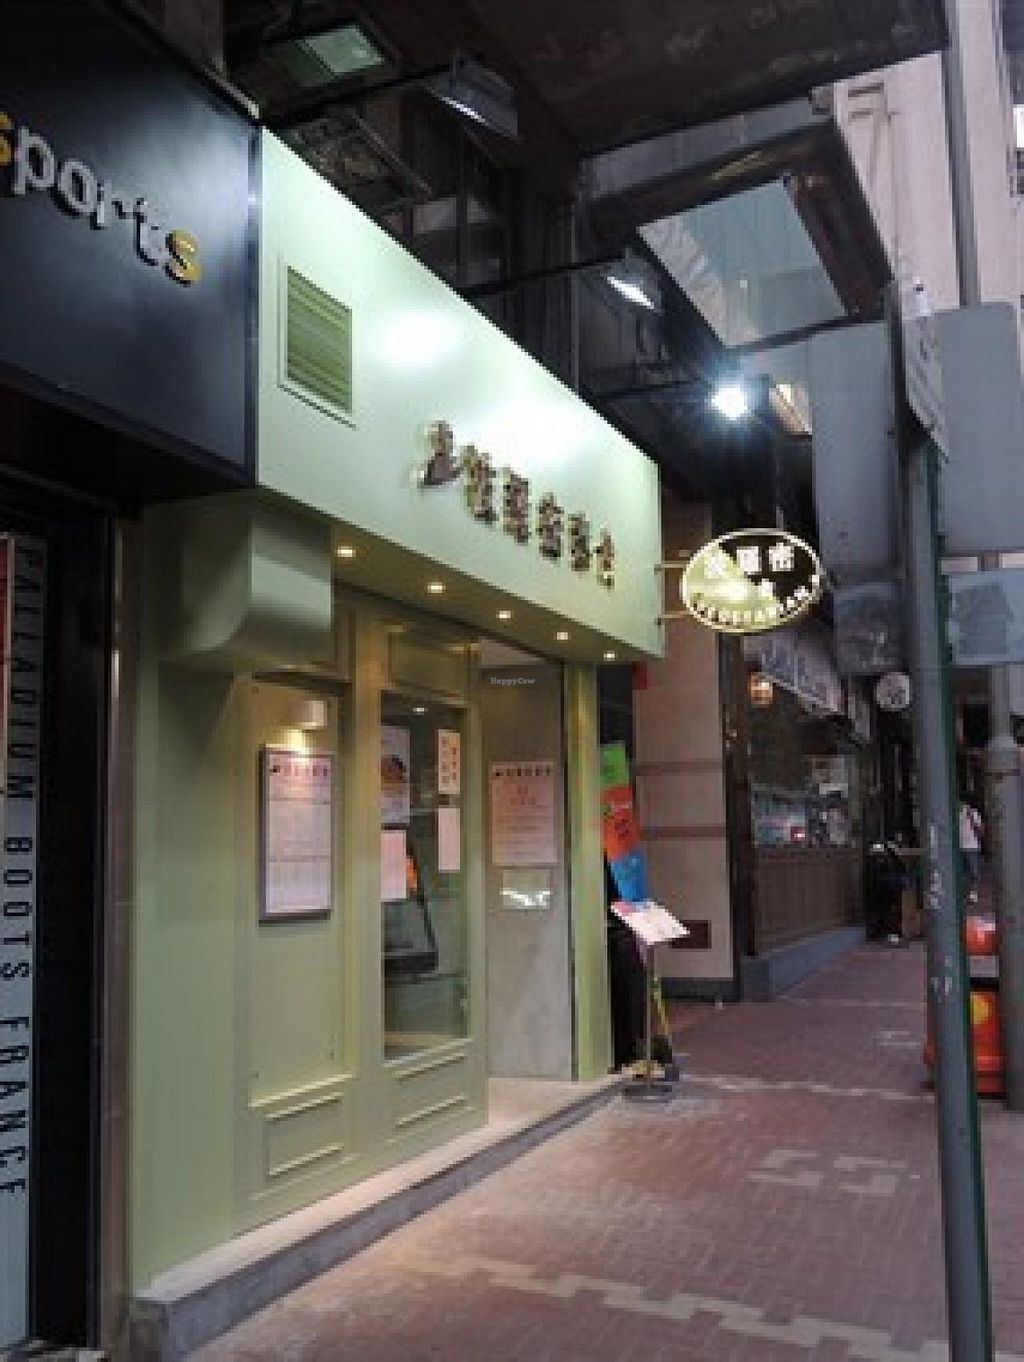 """Photo of CLOSED: Paramita Vegetarian Restaurant - Tin Hau  by <a href=""""/members/profile/Stevie"""">Stevie</a> <br/>1 <br/> May 28, 2015  - <a href='/contact/abuse/image/11352/103781'>Report</a>"""